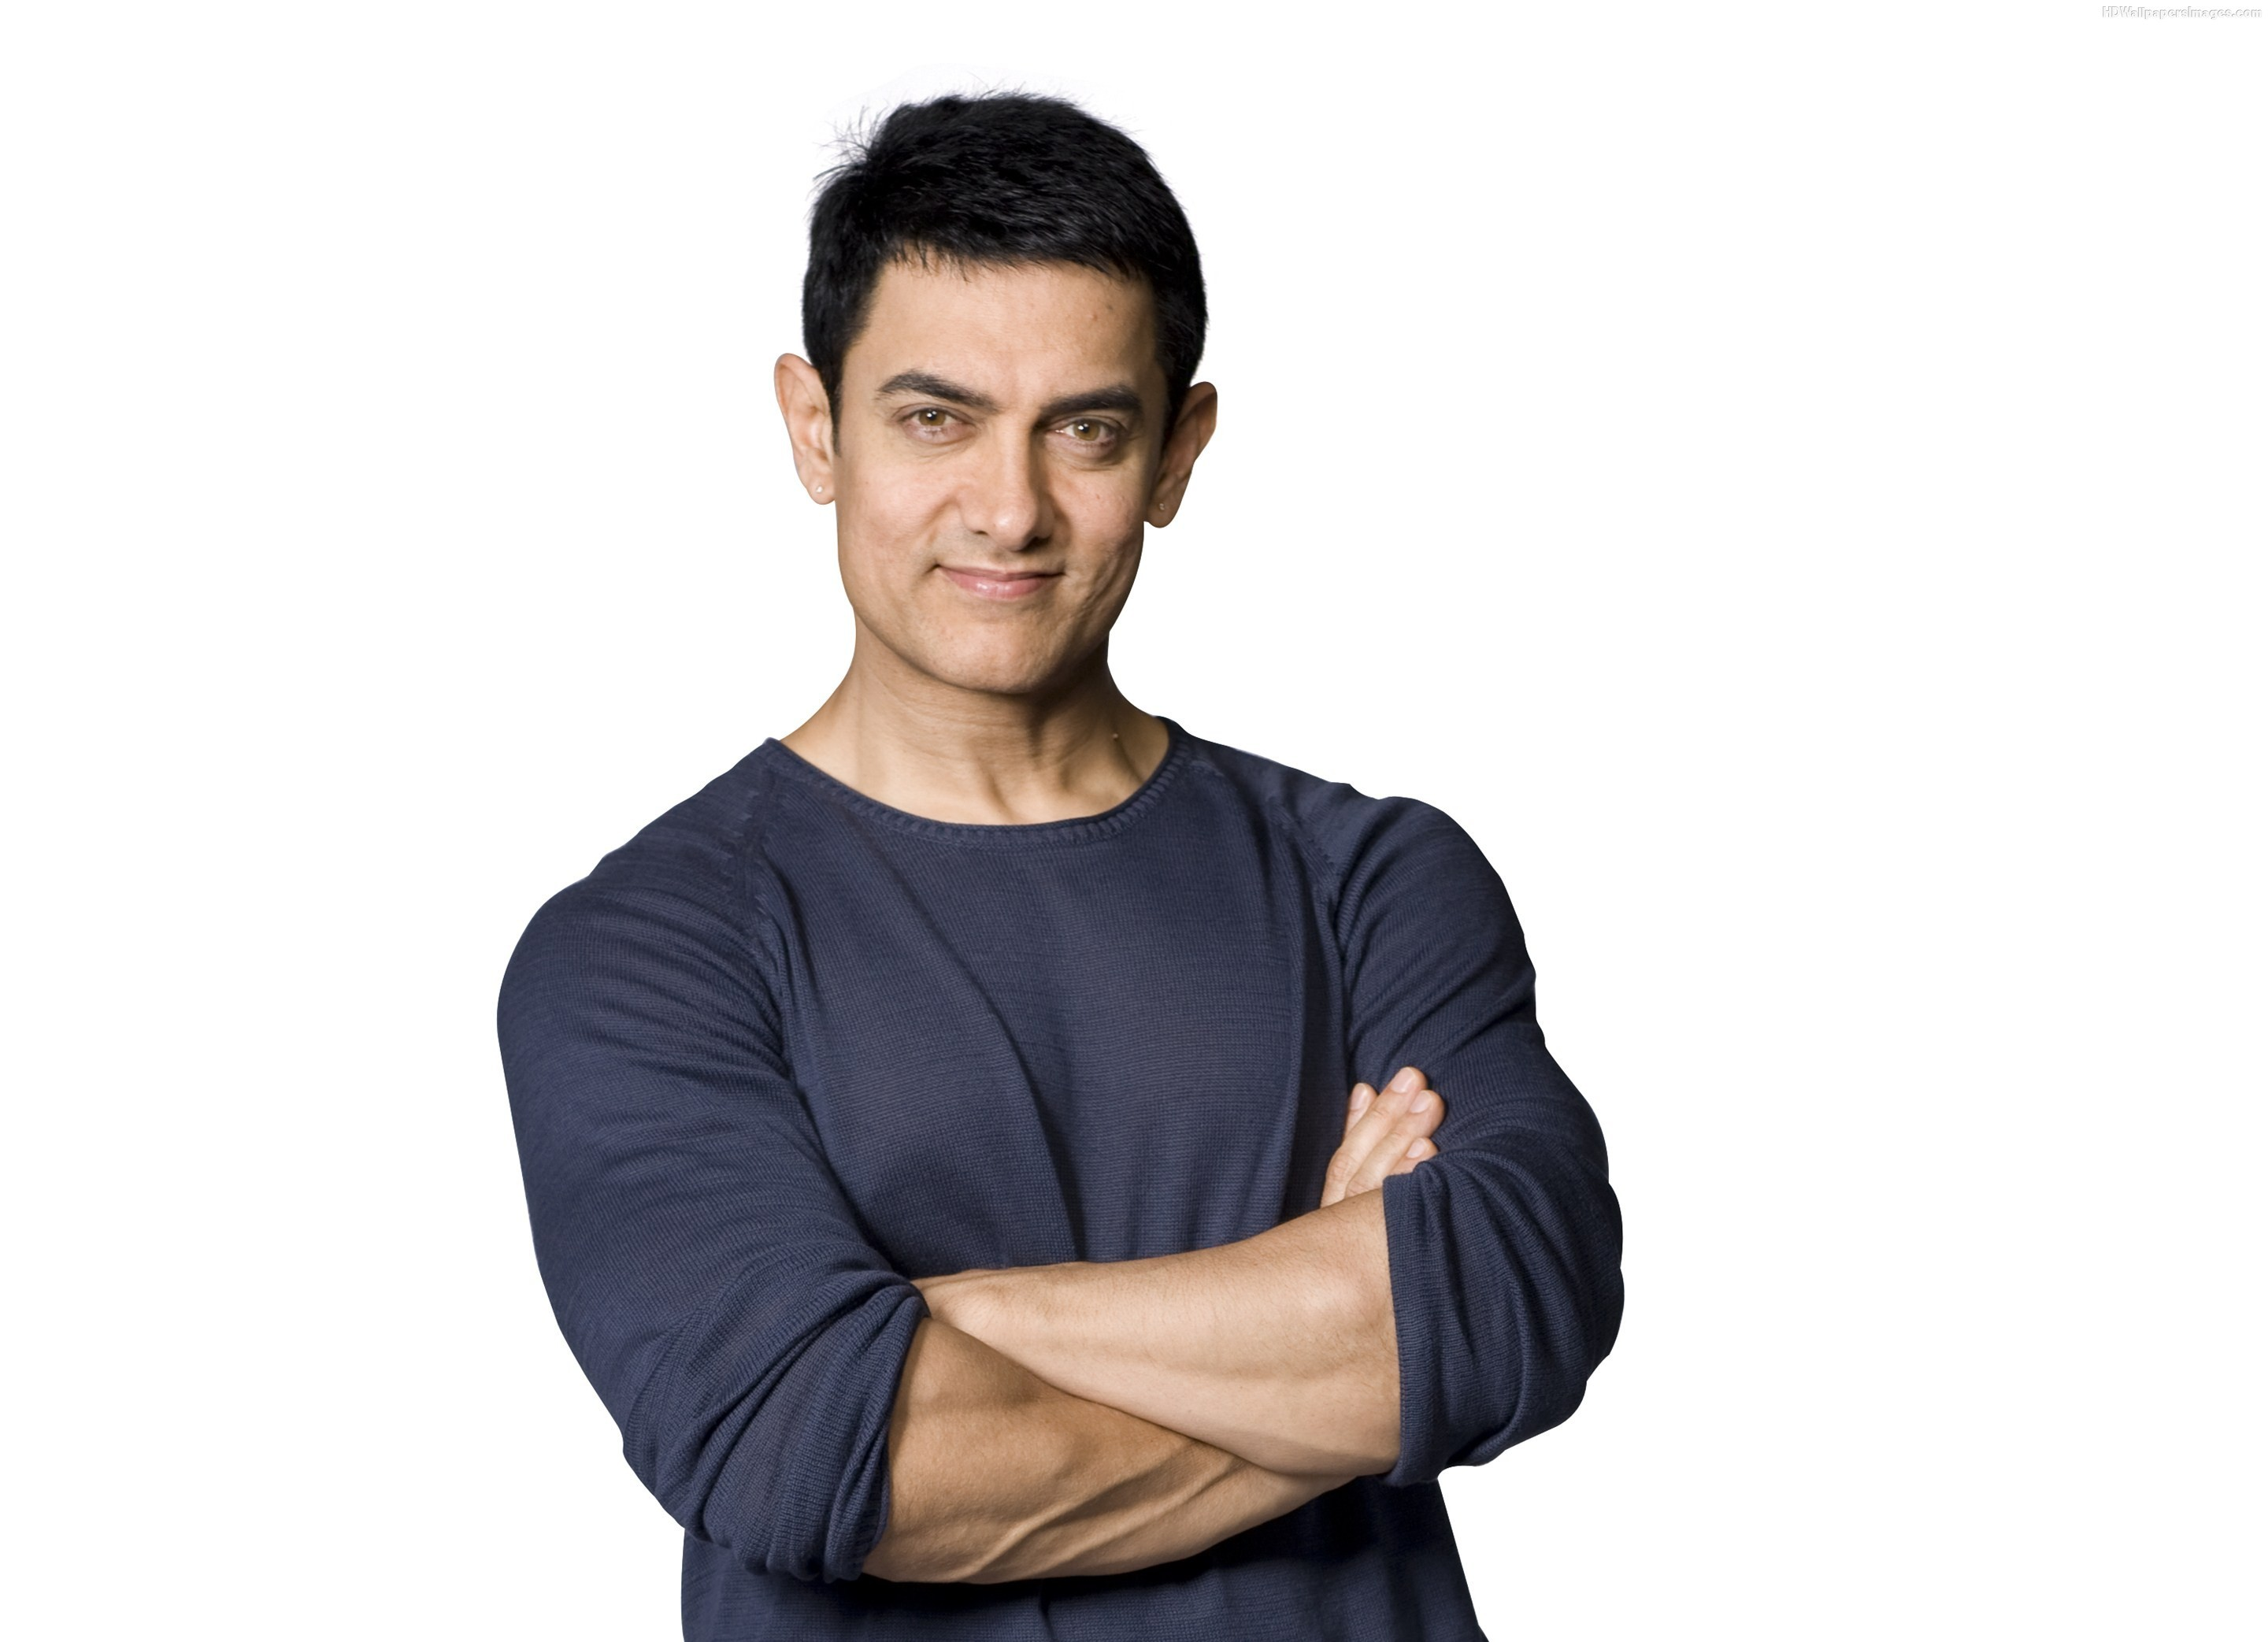 Aamir Khan Wallpapers Images Photos Pictures Backgrounds 2880x2085